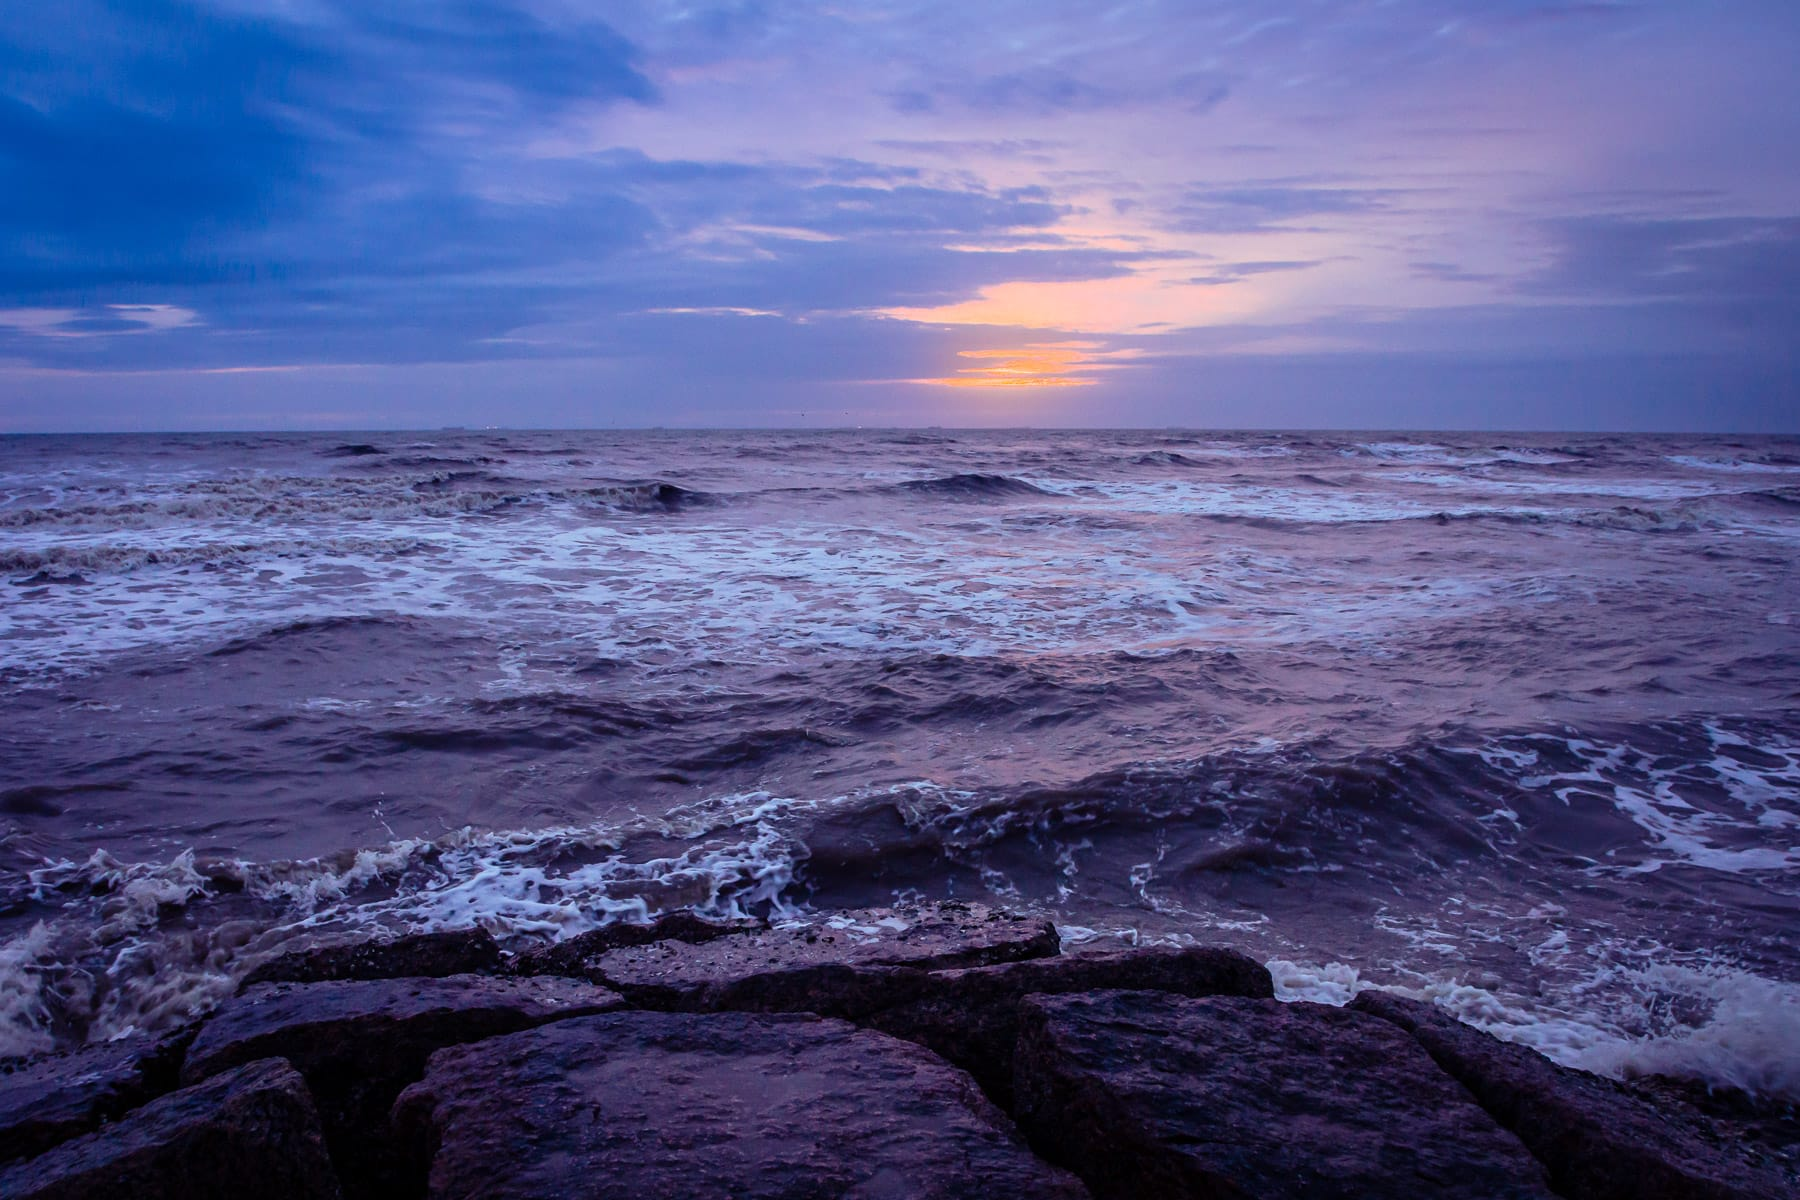 The sun rises on the Gulf of Mexico, as seen from a granite groyne along the Galveston, Texas, beach.